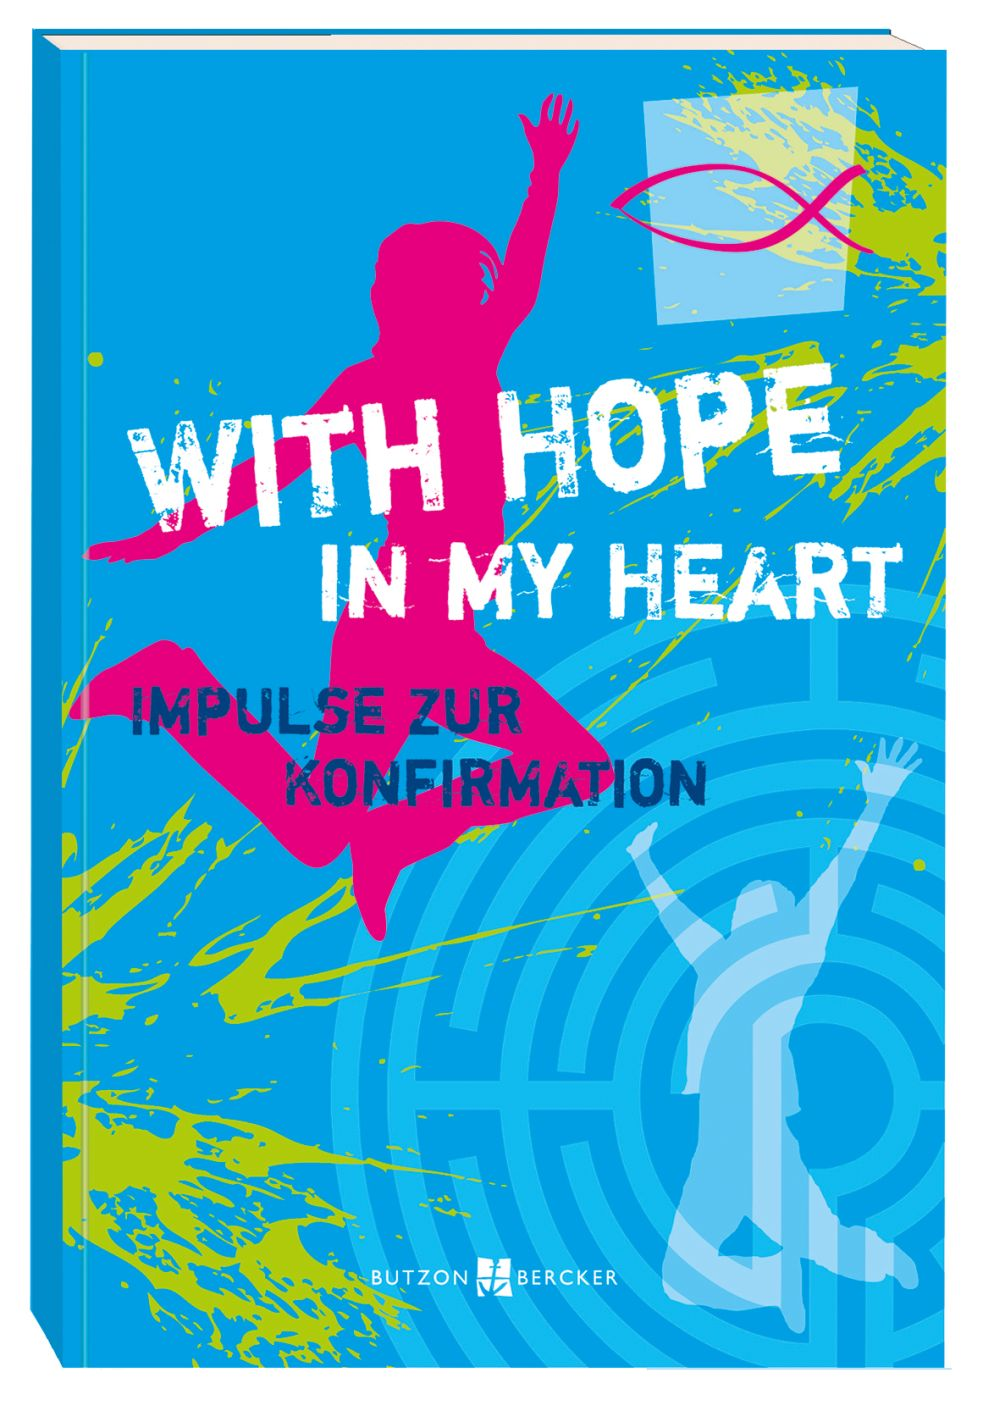 With Hope in my Heart - Impulse zur Konfirmation